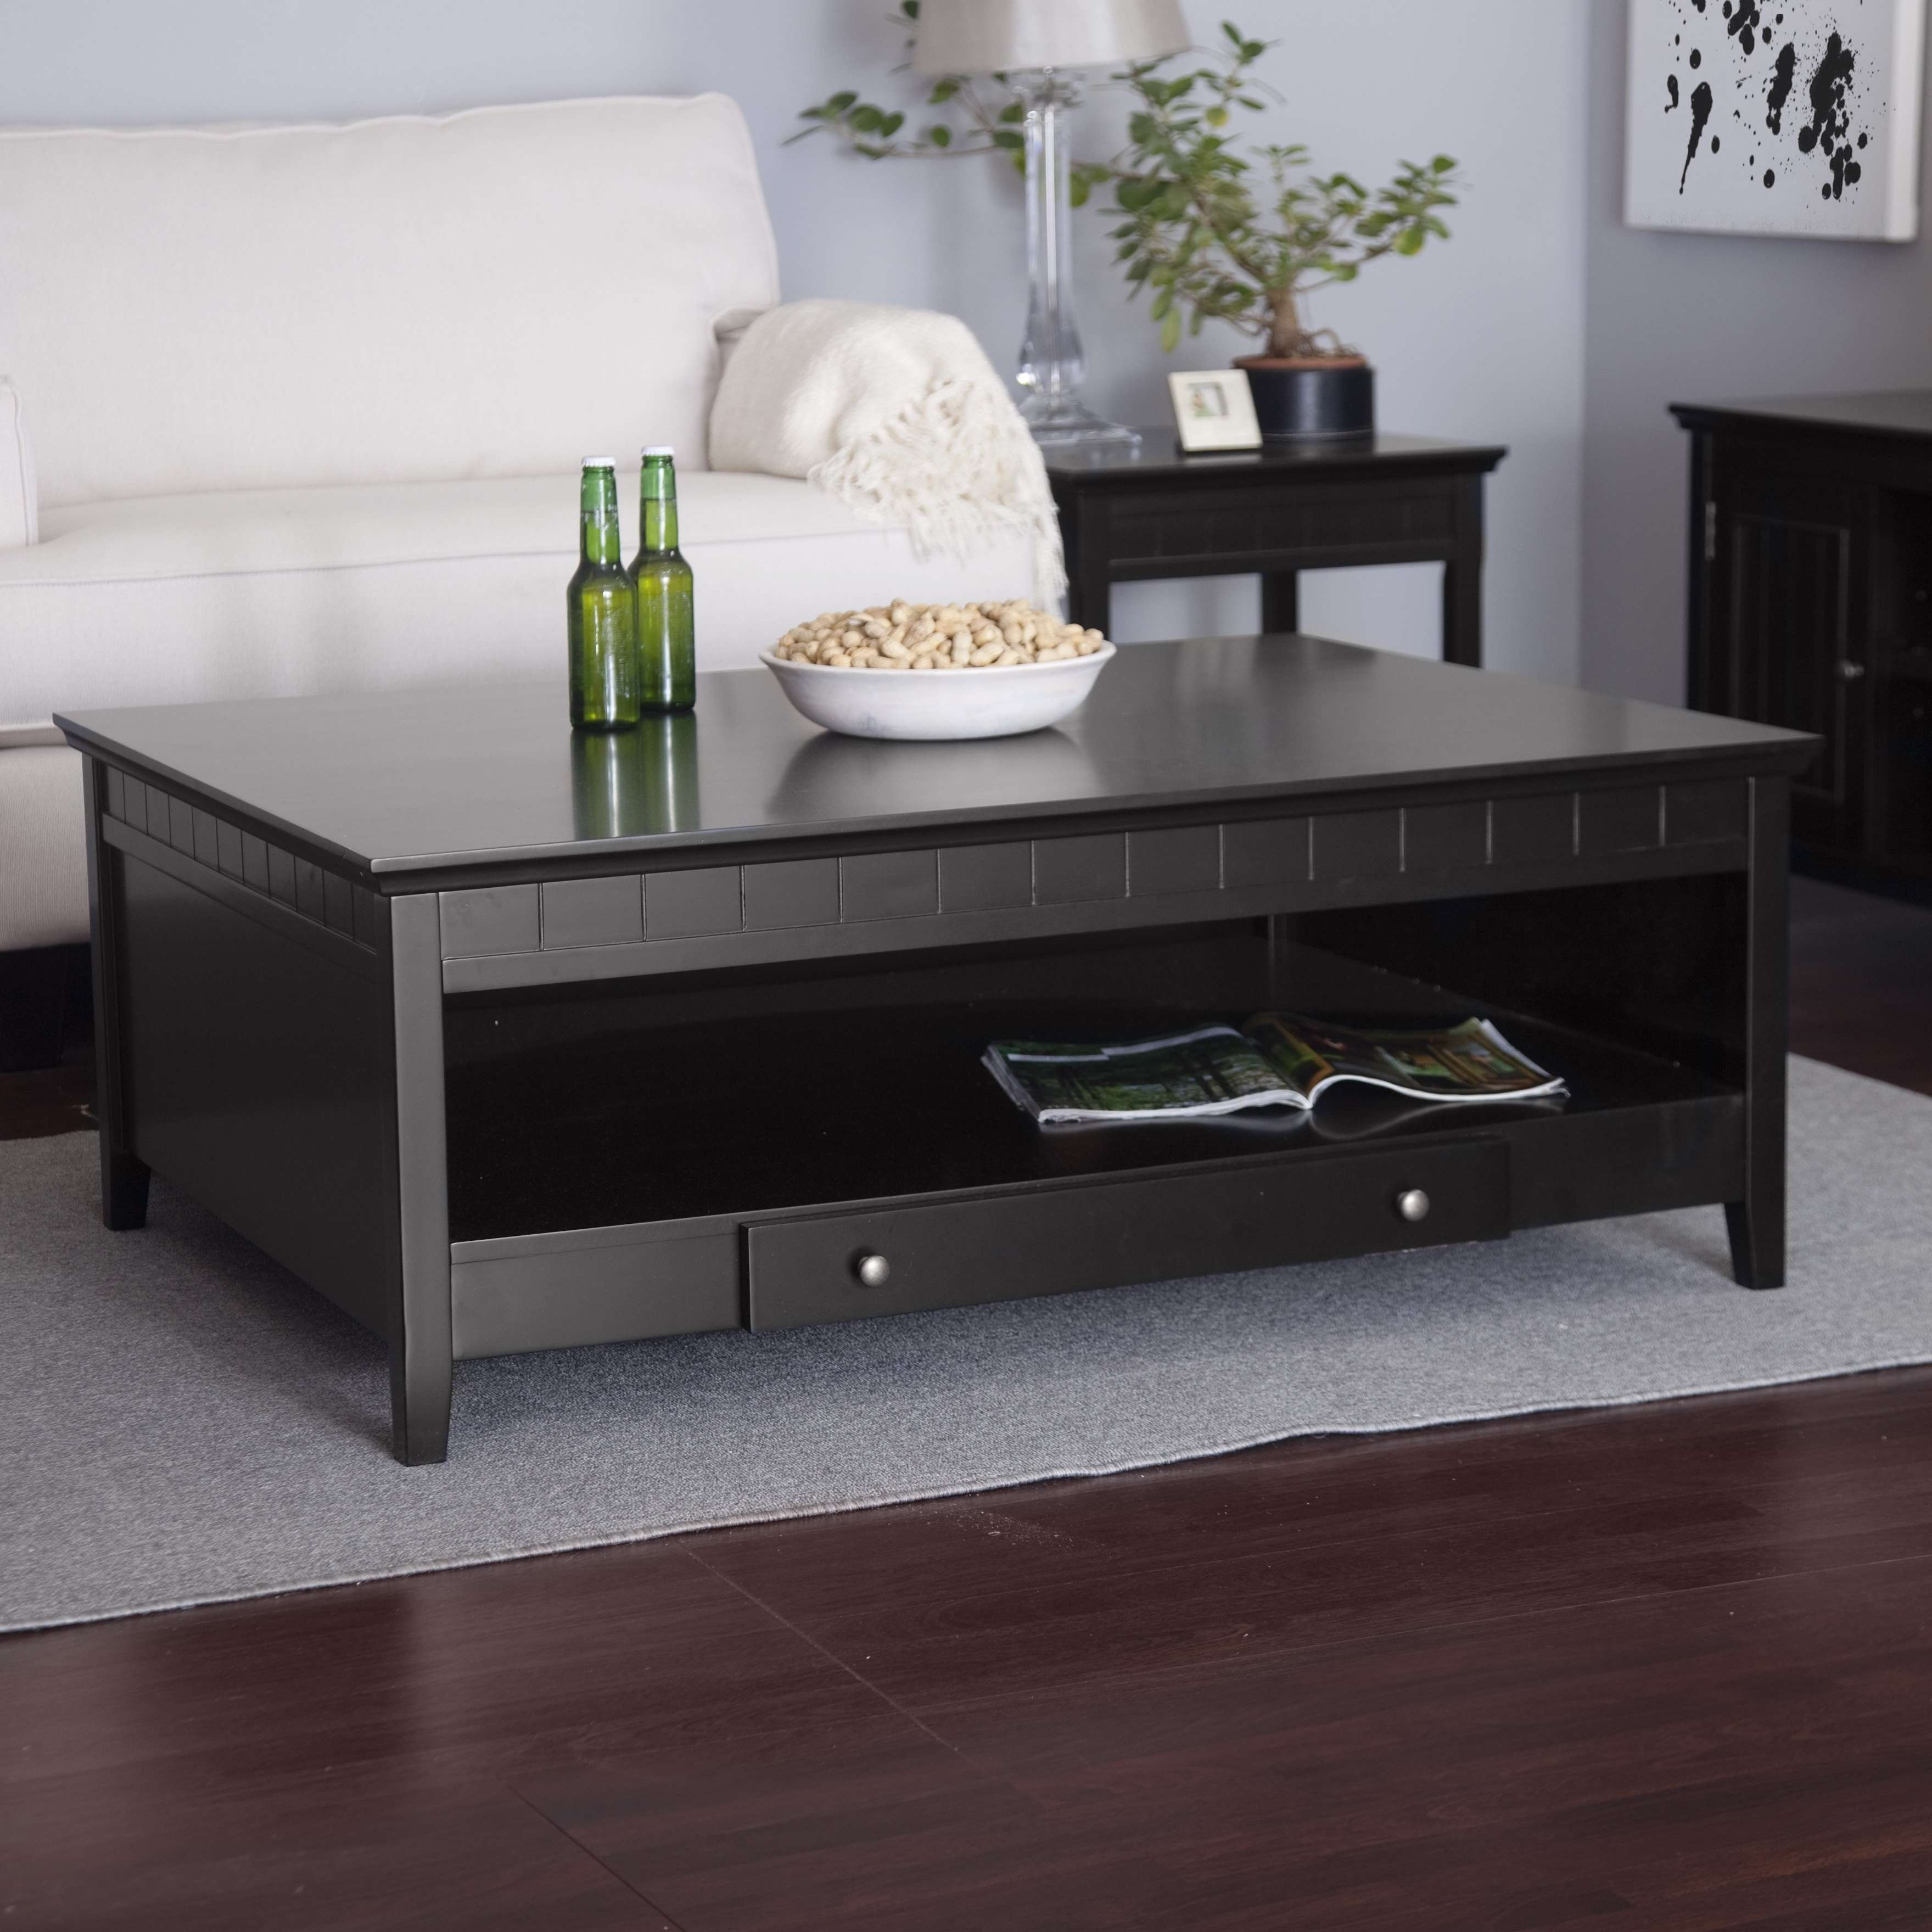 Large Black Coffee Table Regarding Best And Newest Square Black Coffee Tables (View 19 of 20)